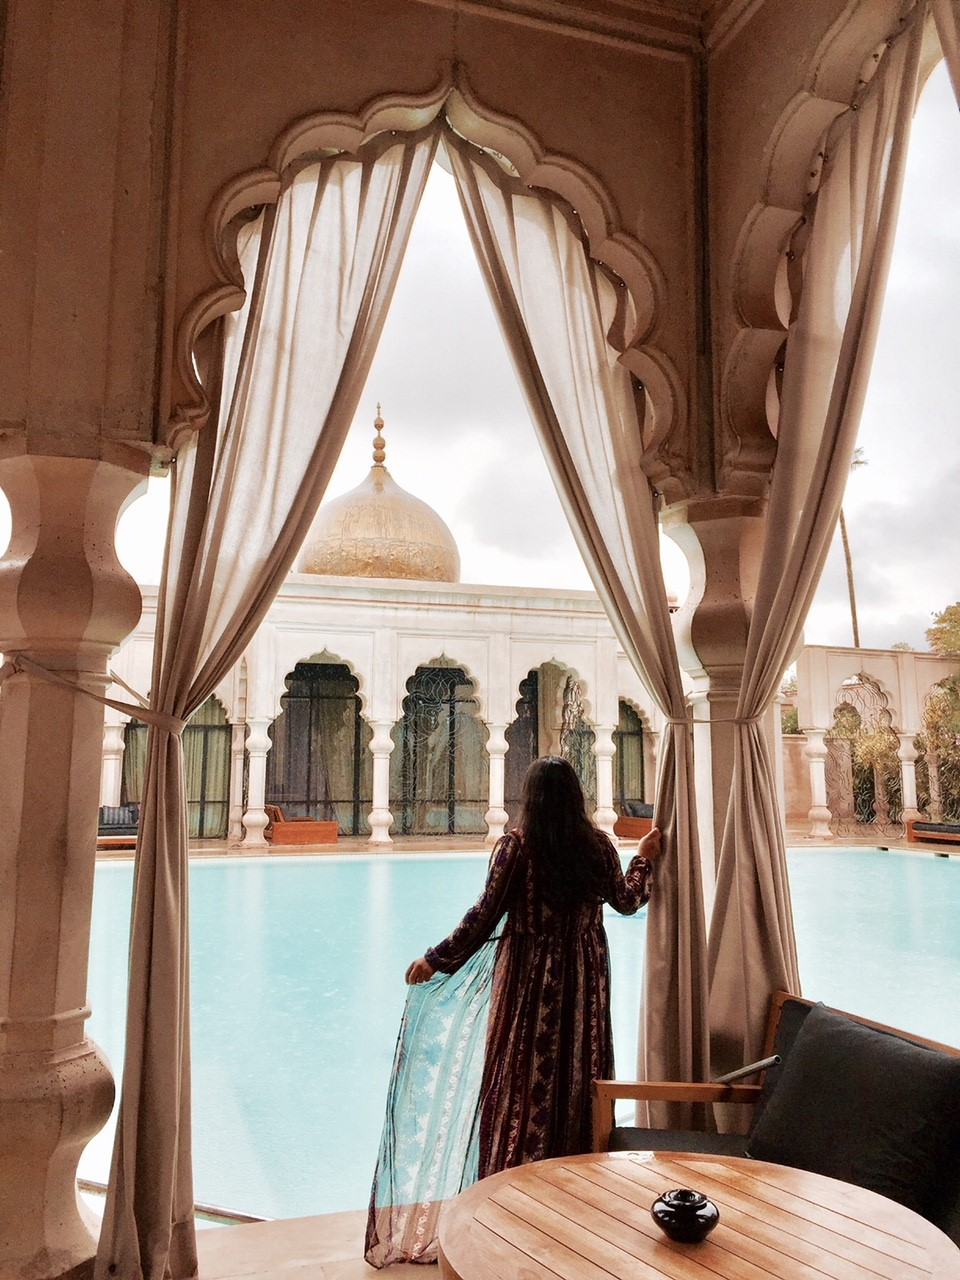 PALAIS NAMASKAR - A luxury oasis in Marrakech, only 30 minutes away from the main attractions, best place to stay if trying to stay away from the hustle and bustle of the city life.